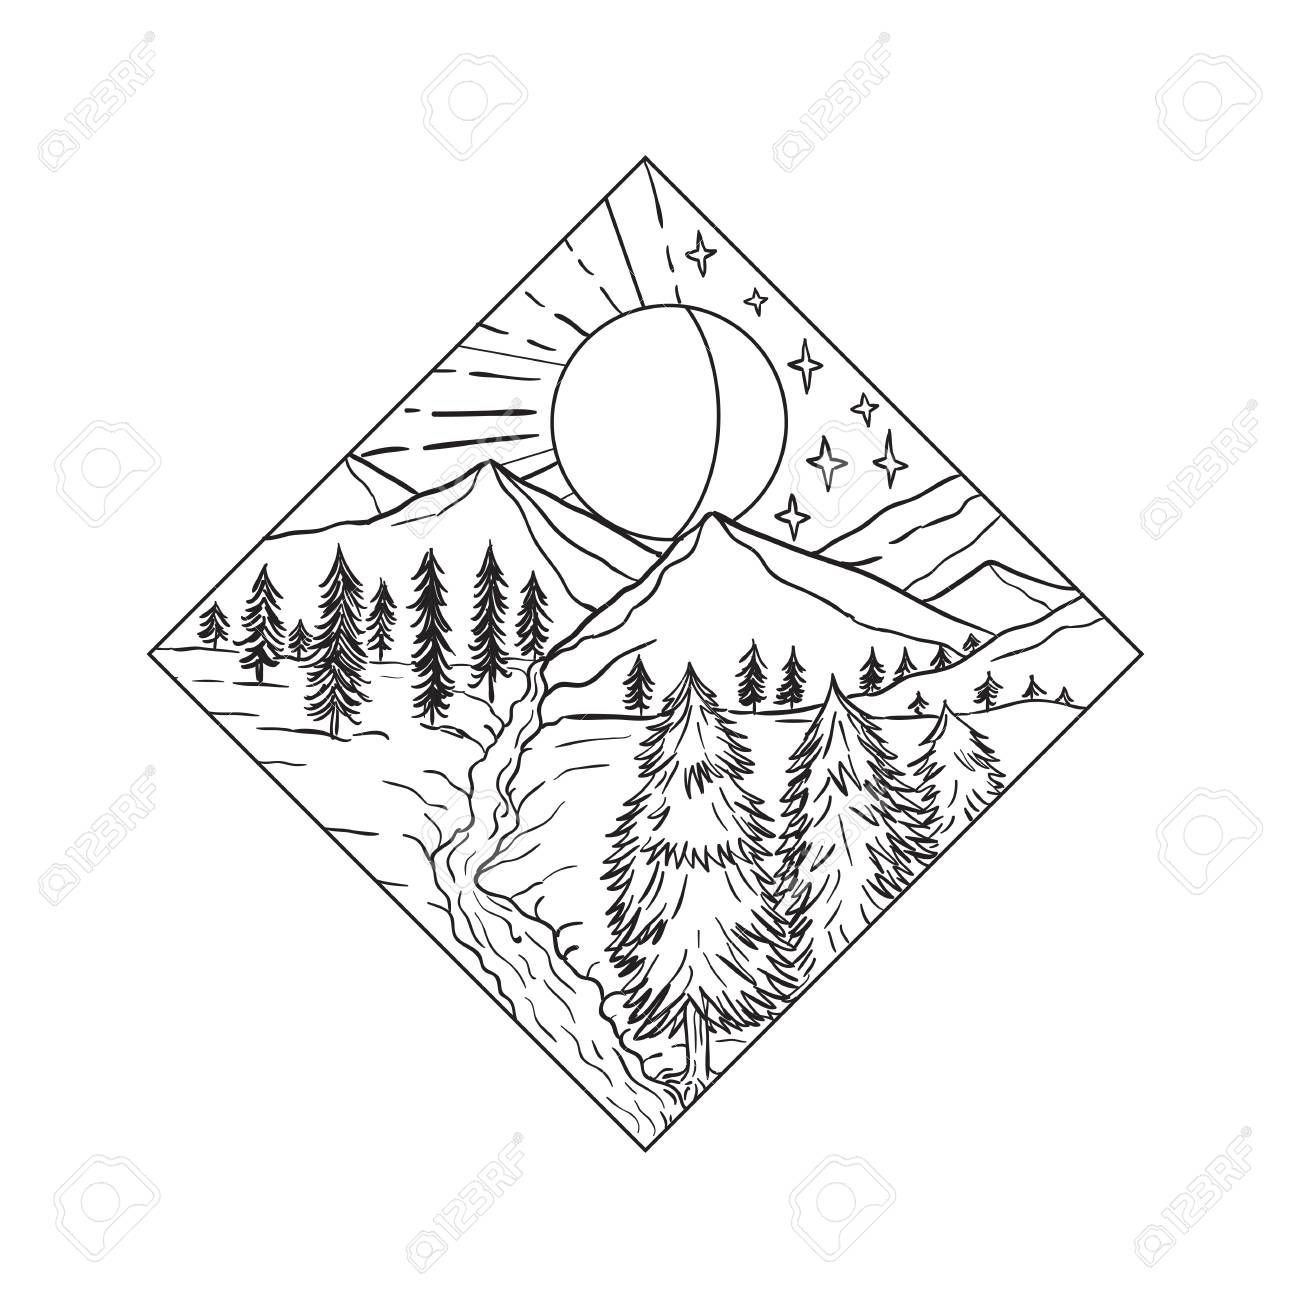 Mono line illustration of Night and Day Sun and Moon stars with mountain river and trees set inside diamond shape on isolated background done in black and white. , #SPONSORED, #Moon, #Sun, #mountain, #stars, #Day